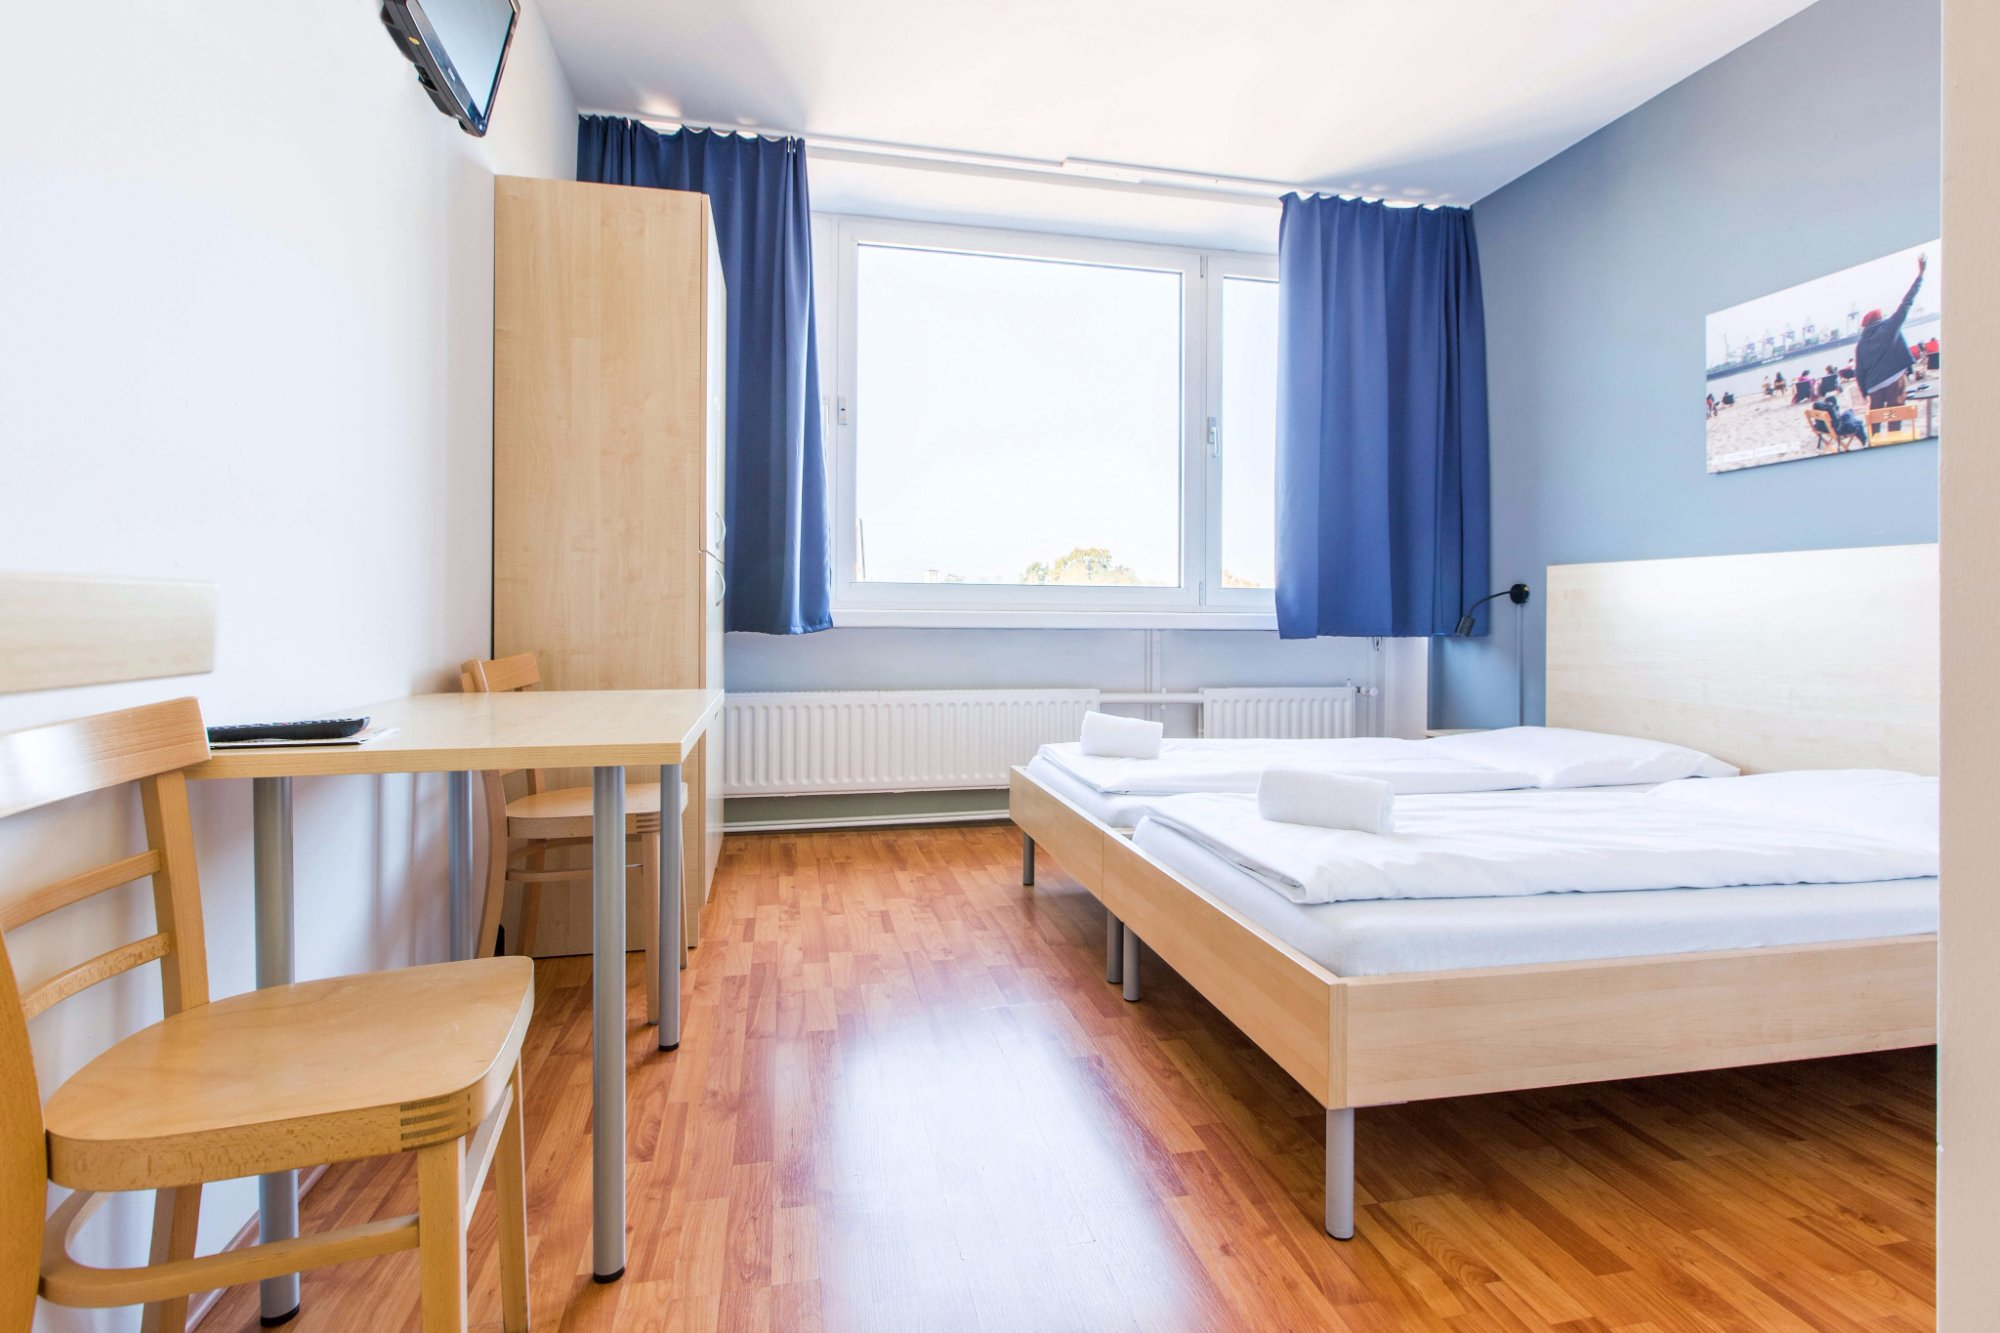 a&o hamburg hammer kirche - updated 2017 prices & specialty hotel, Badezimmer ideen